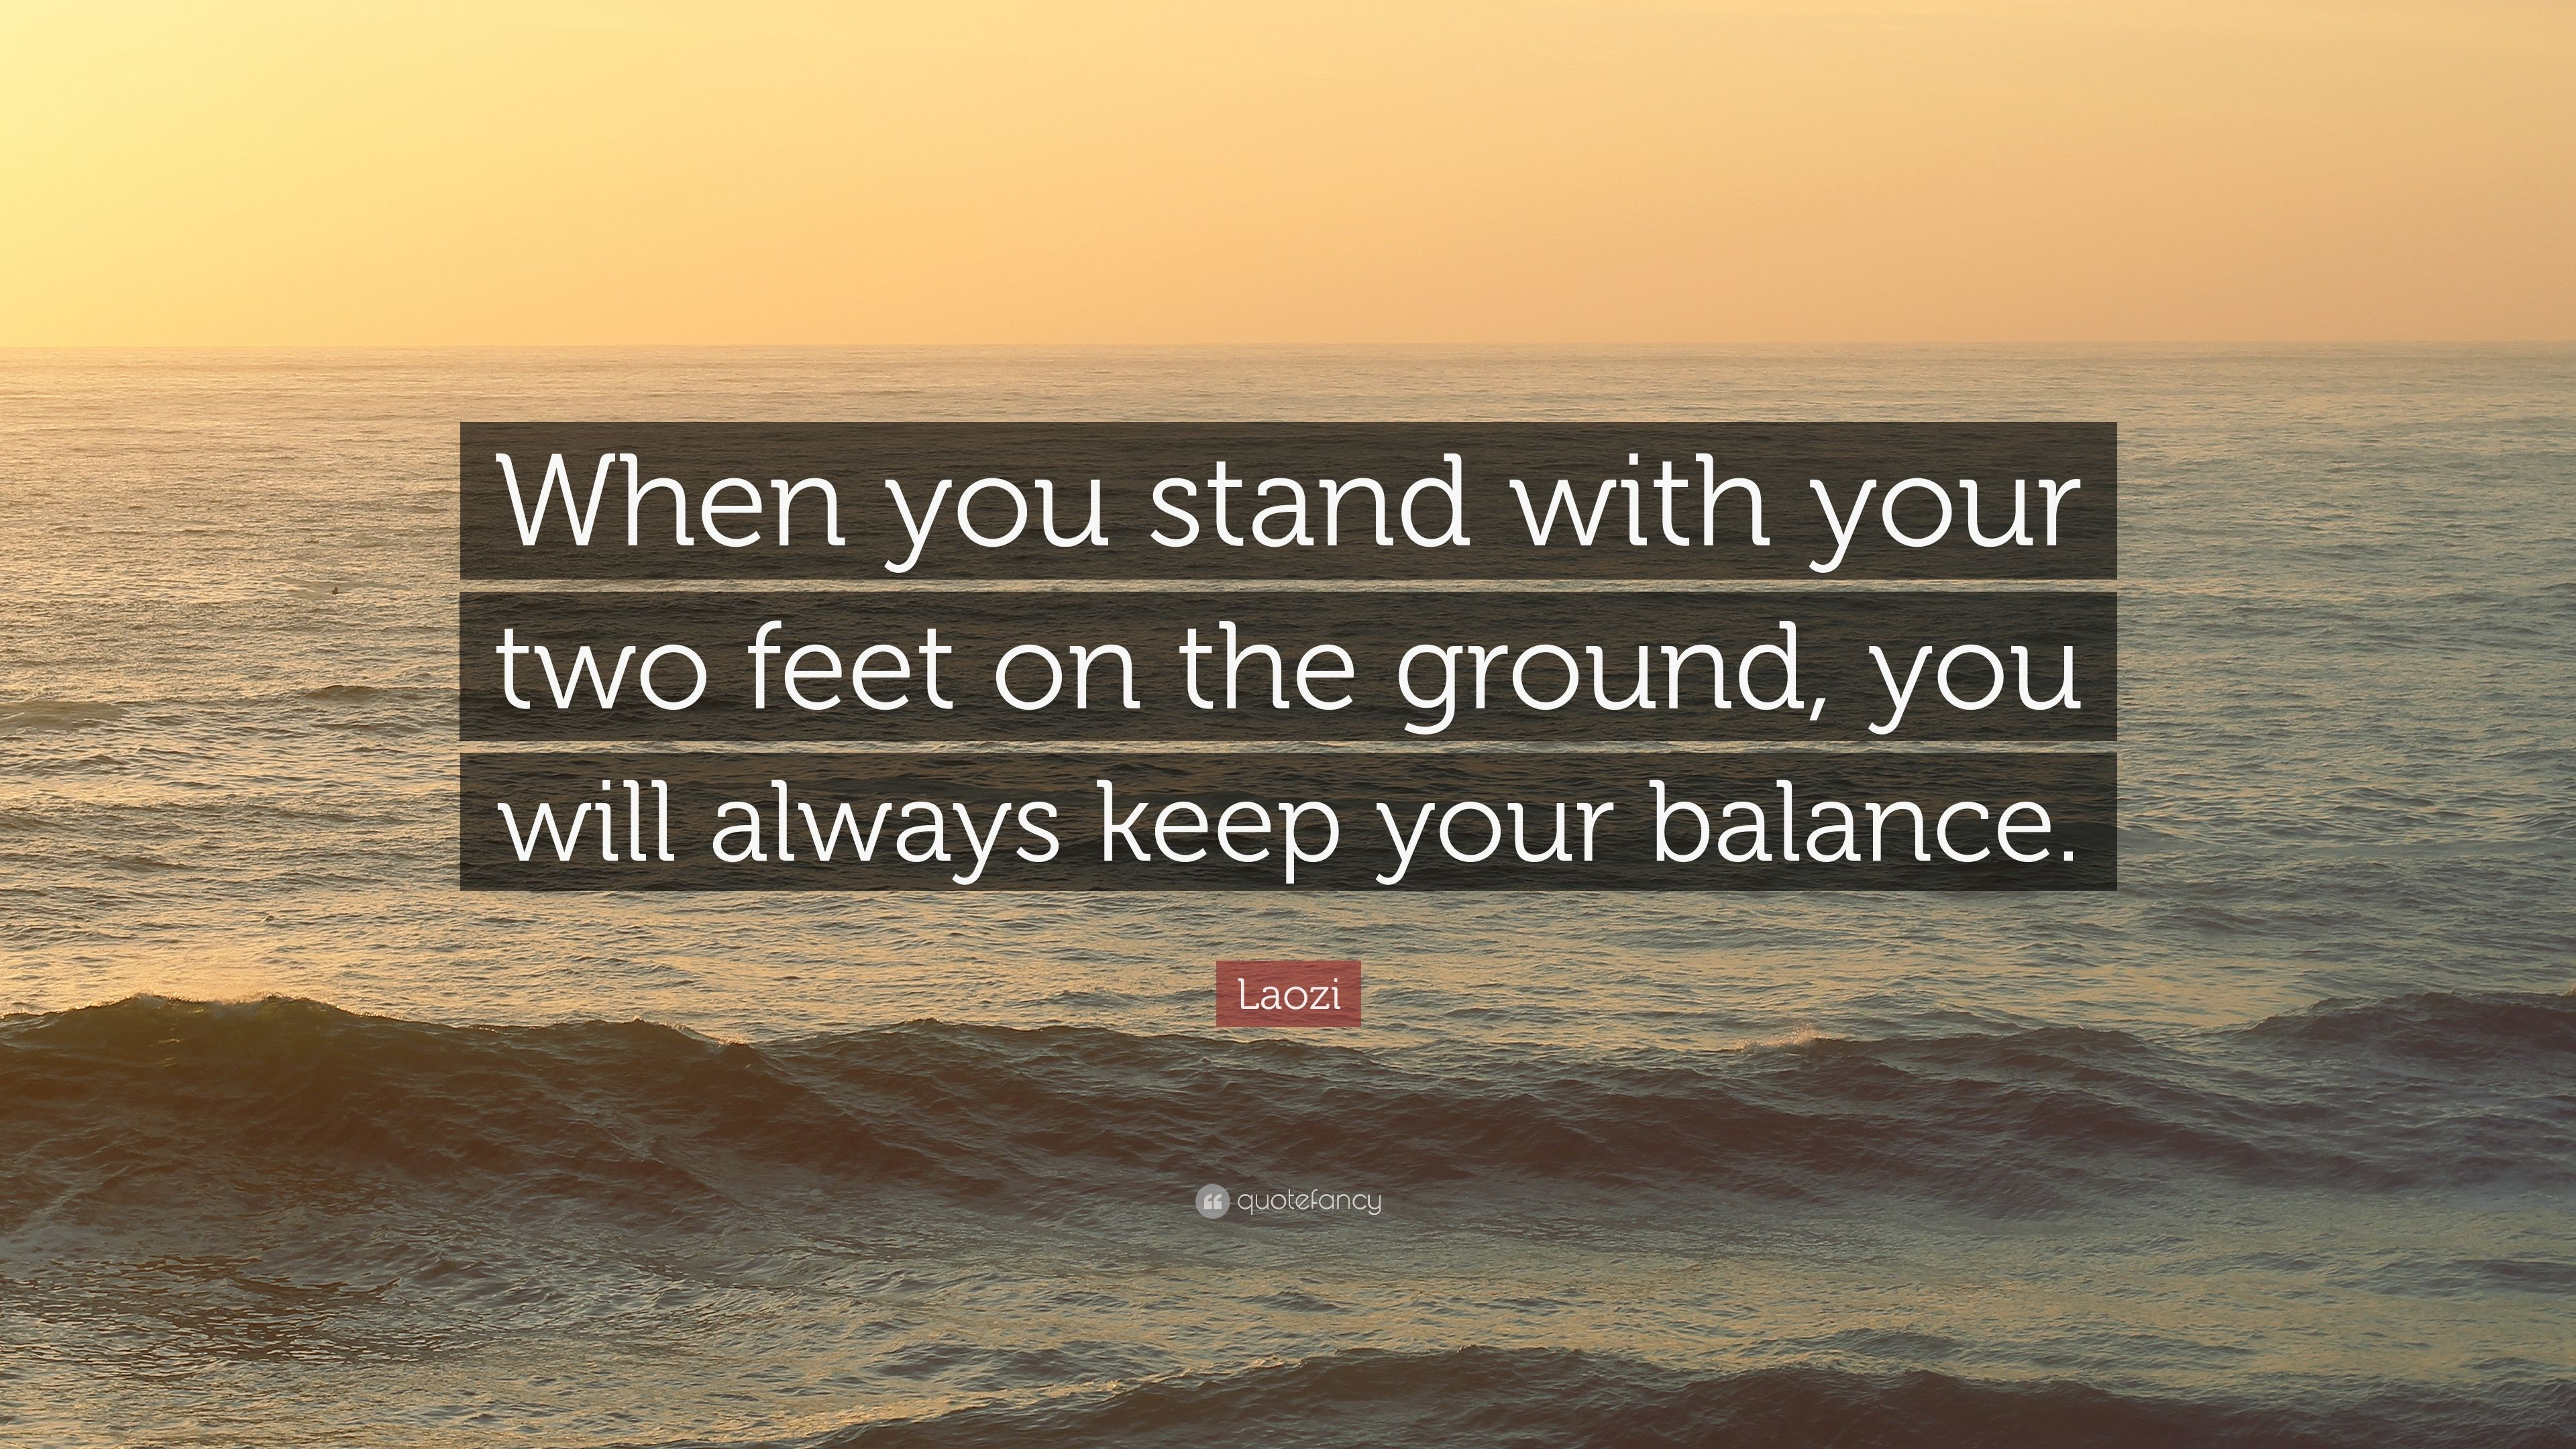 Laozi Quote When You Stand With Your Two Feet On The Ground You